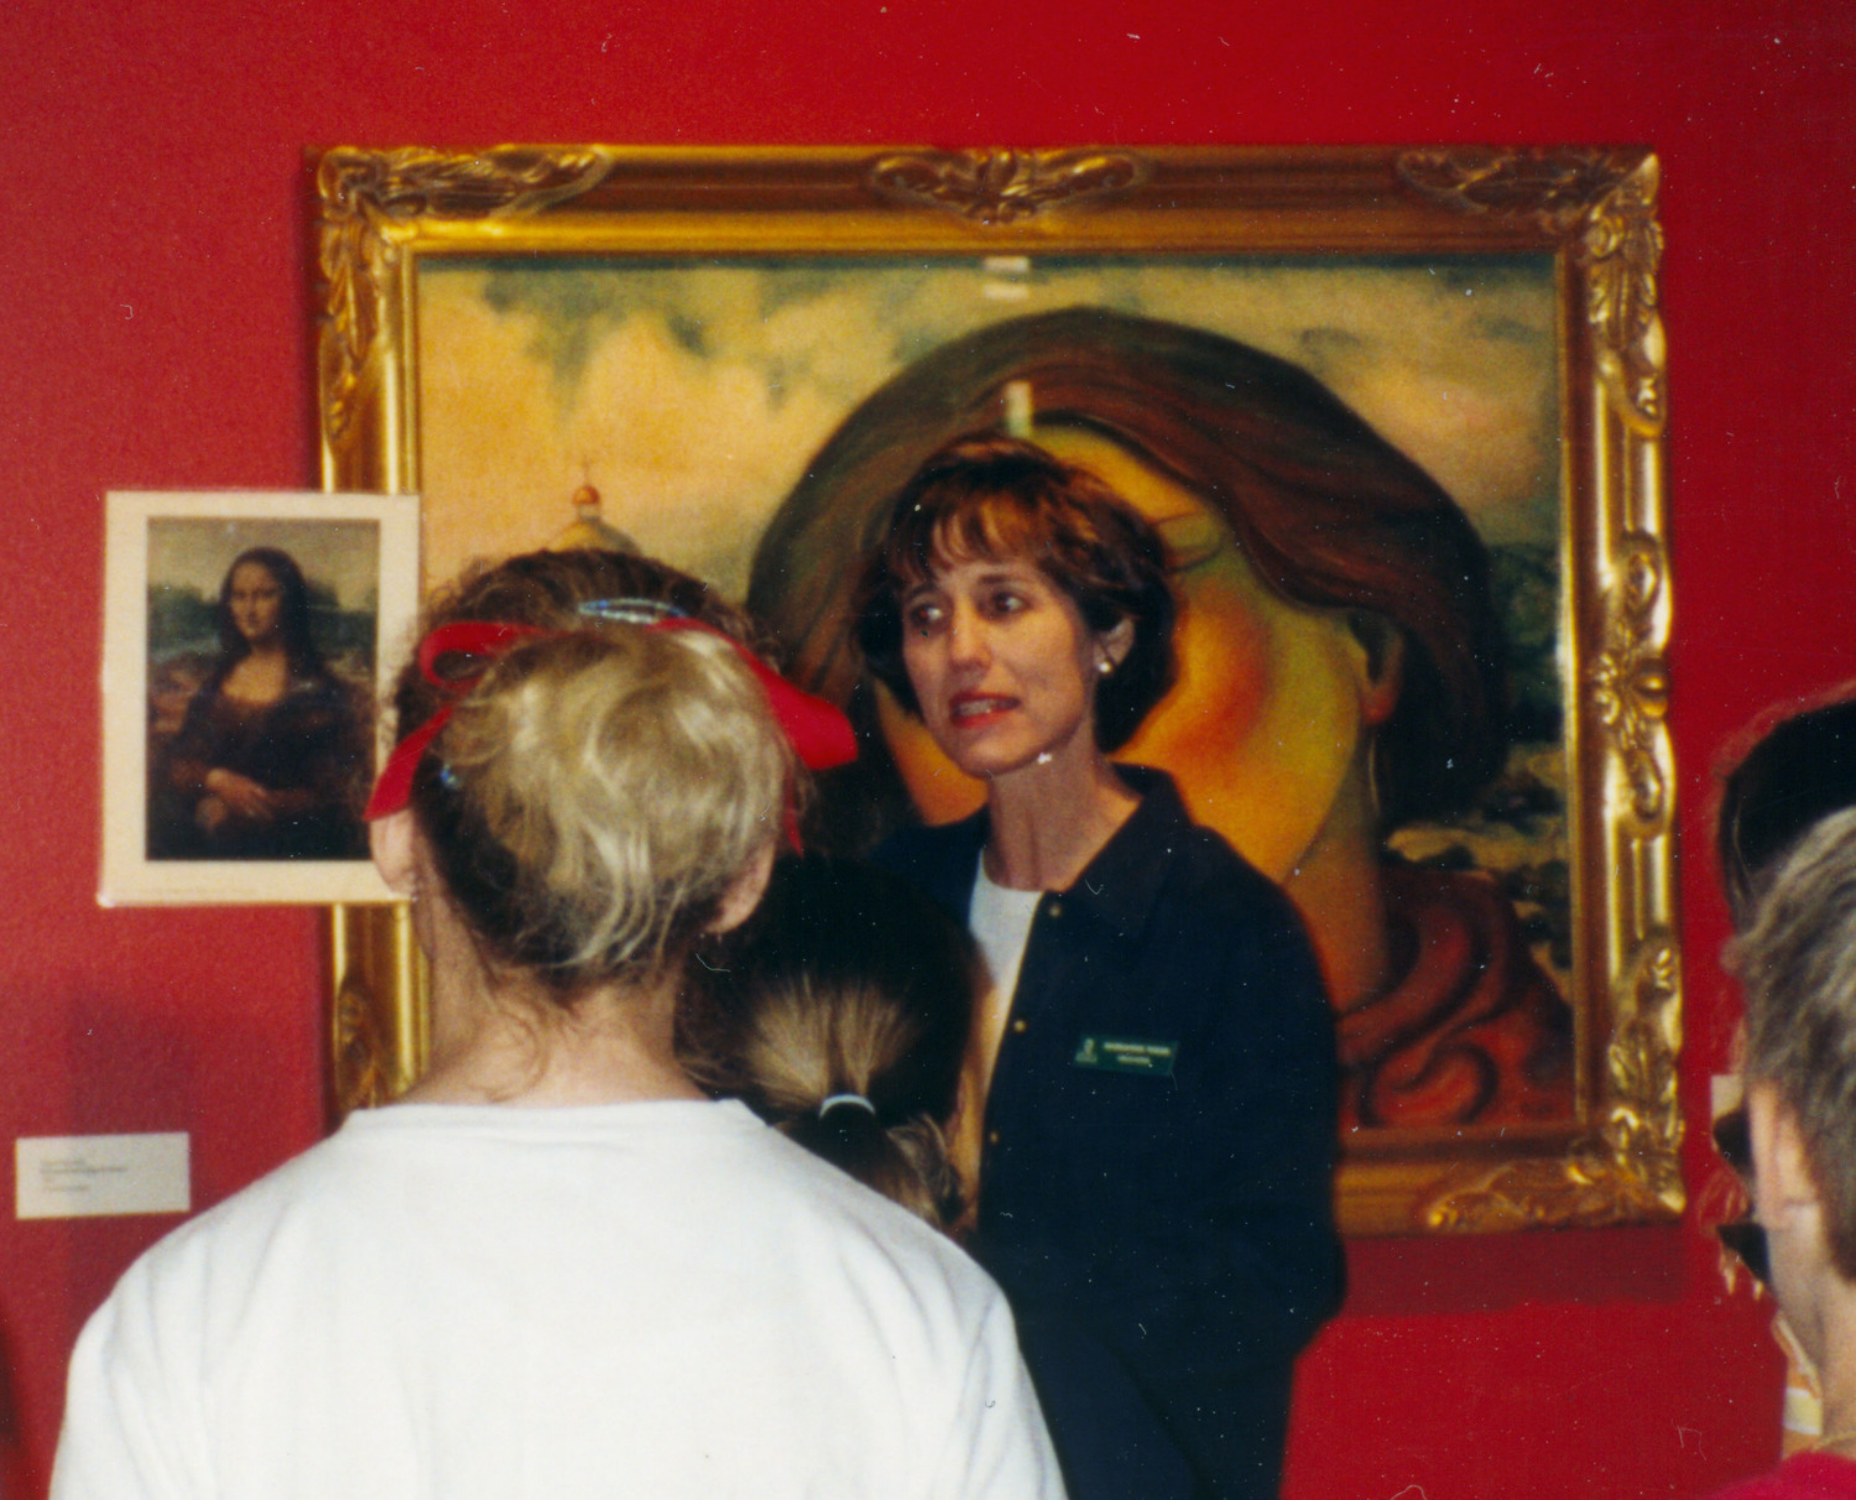 Tours of local art exhibitions are included with many classes.